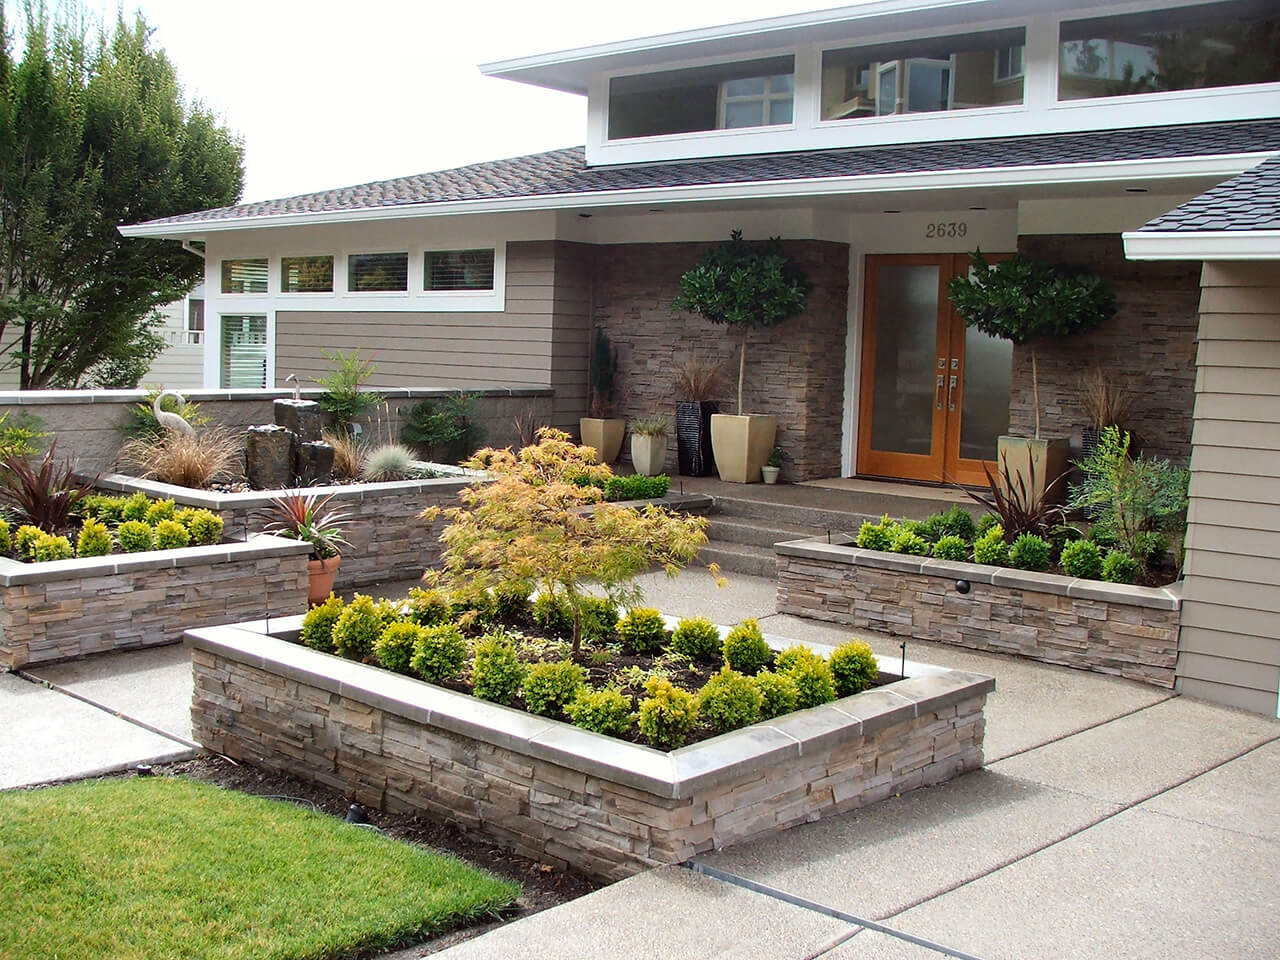 20 brilliant front garden landscaping ideas style motivation for Small front yard ideas